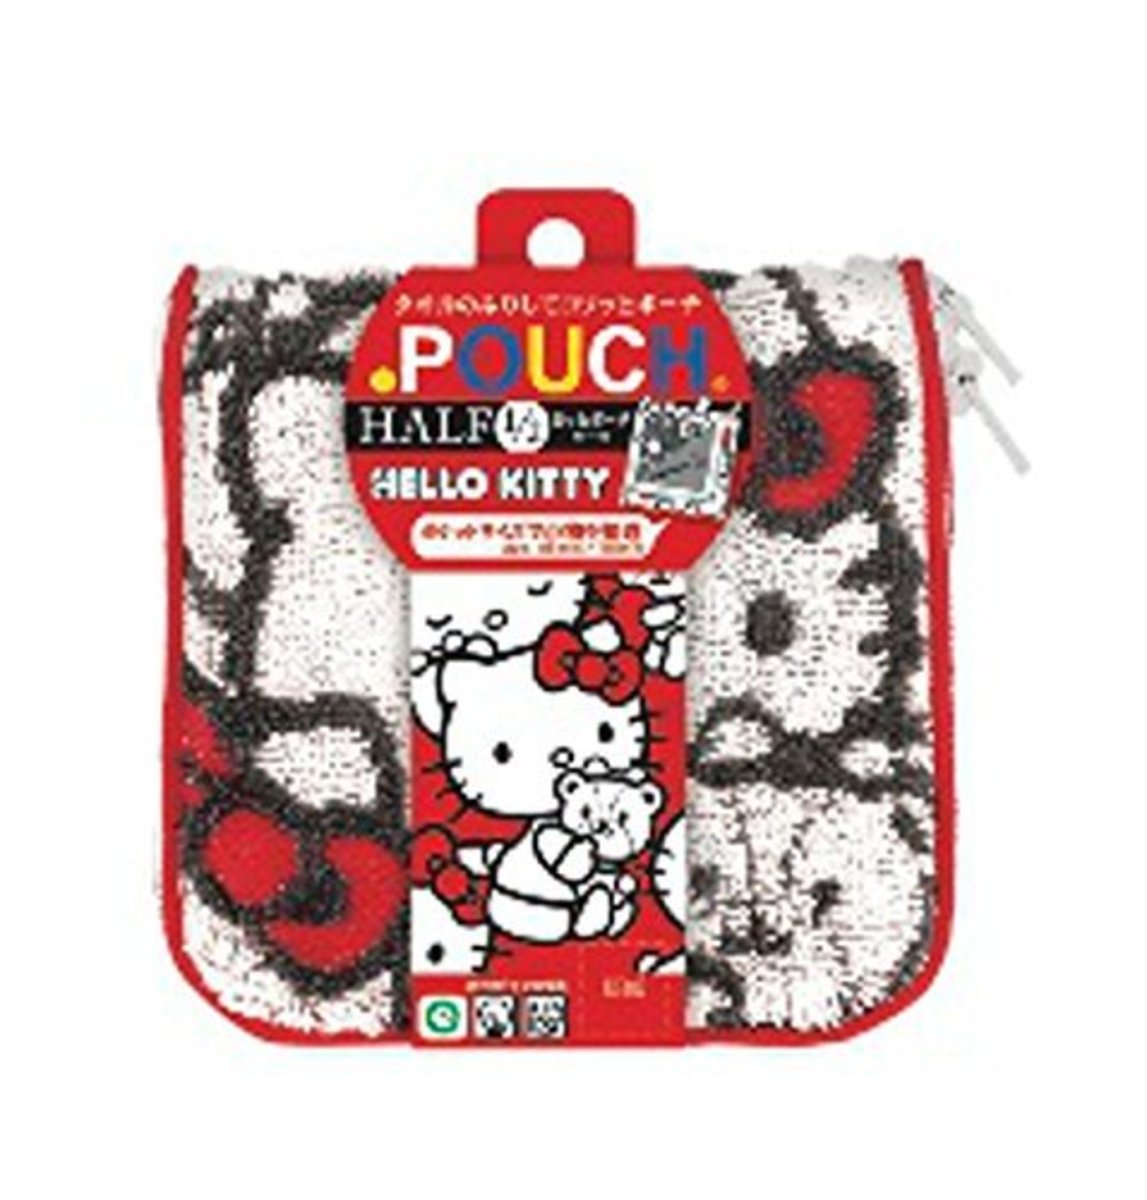 (Hello Kitty) Japan Multi-function Towel Pouch for Cosmetics/Accessories